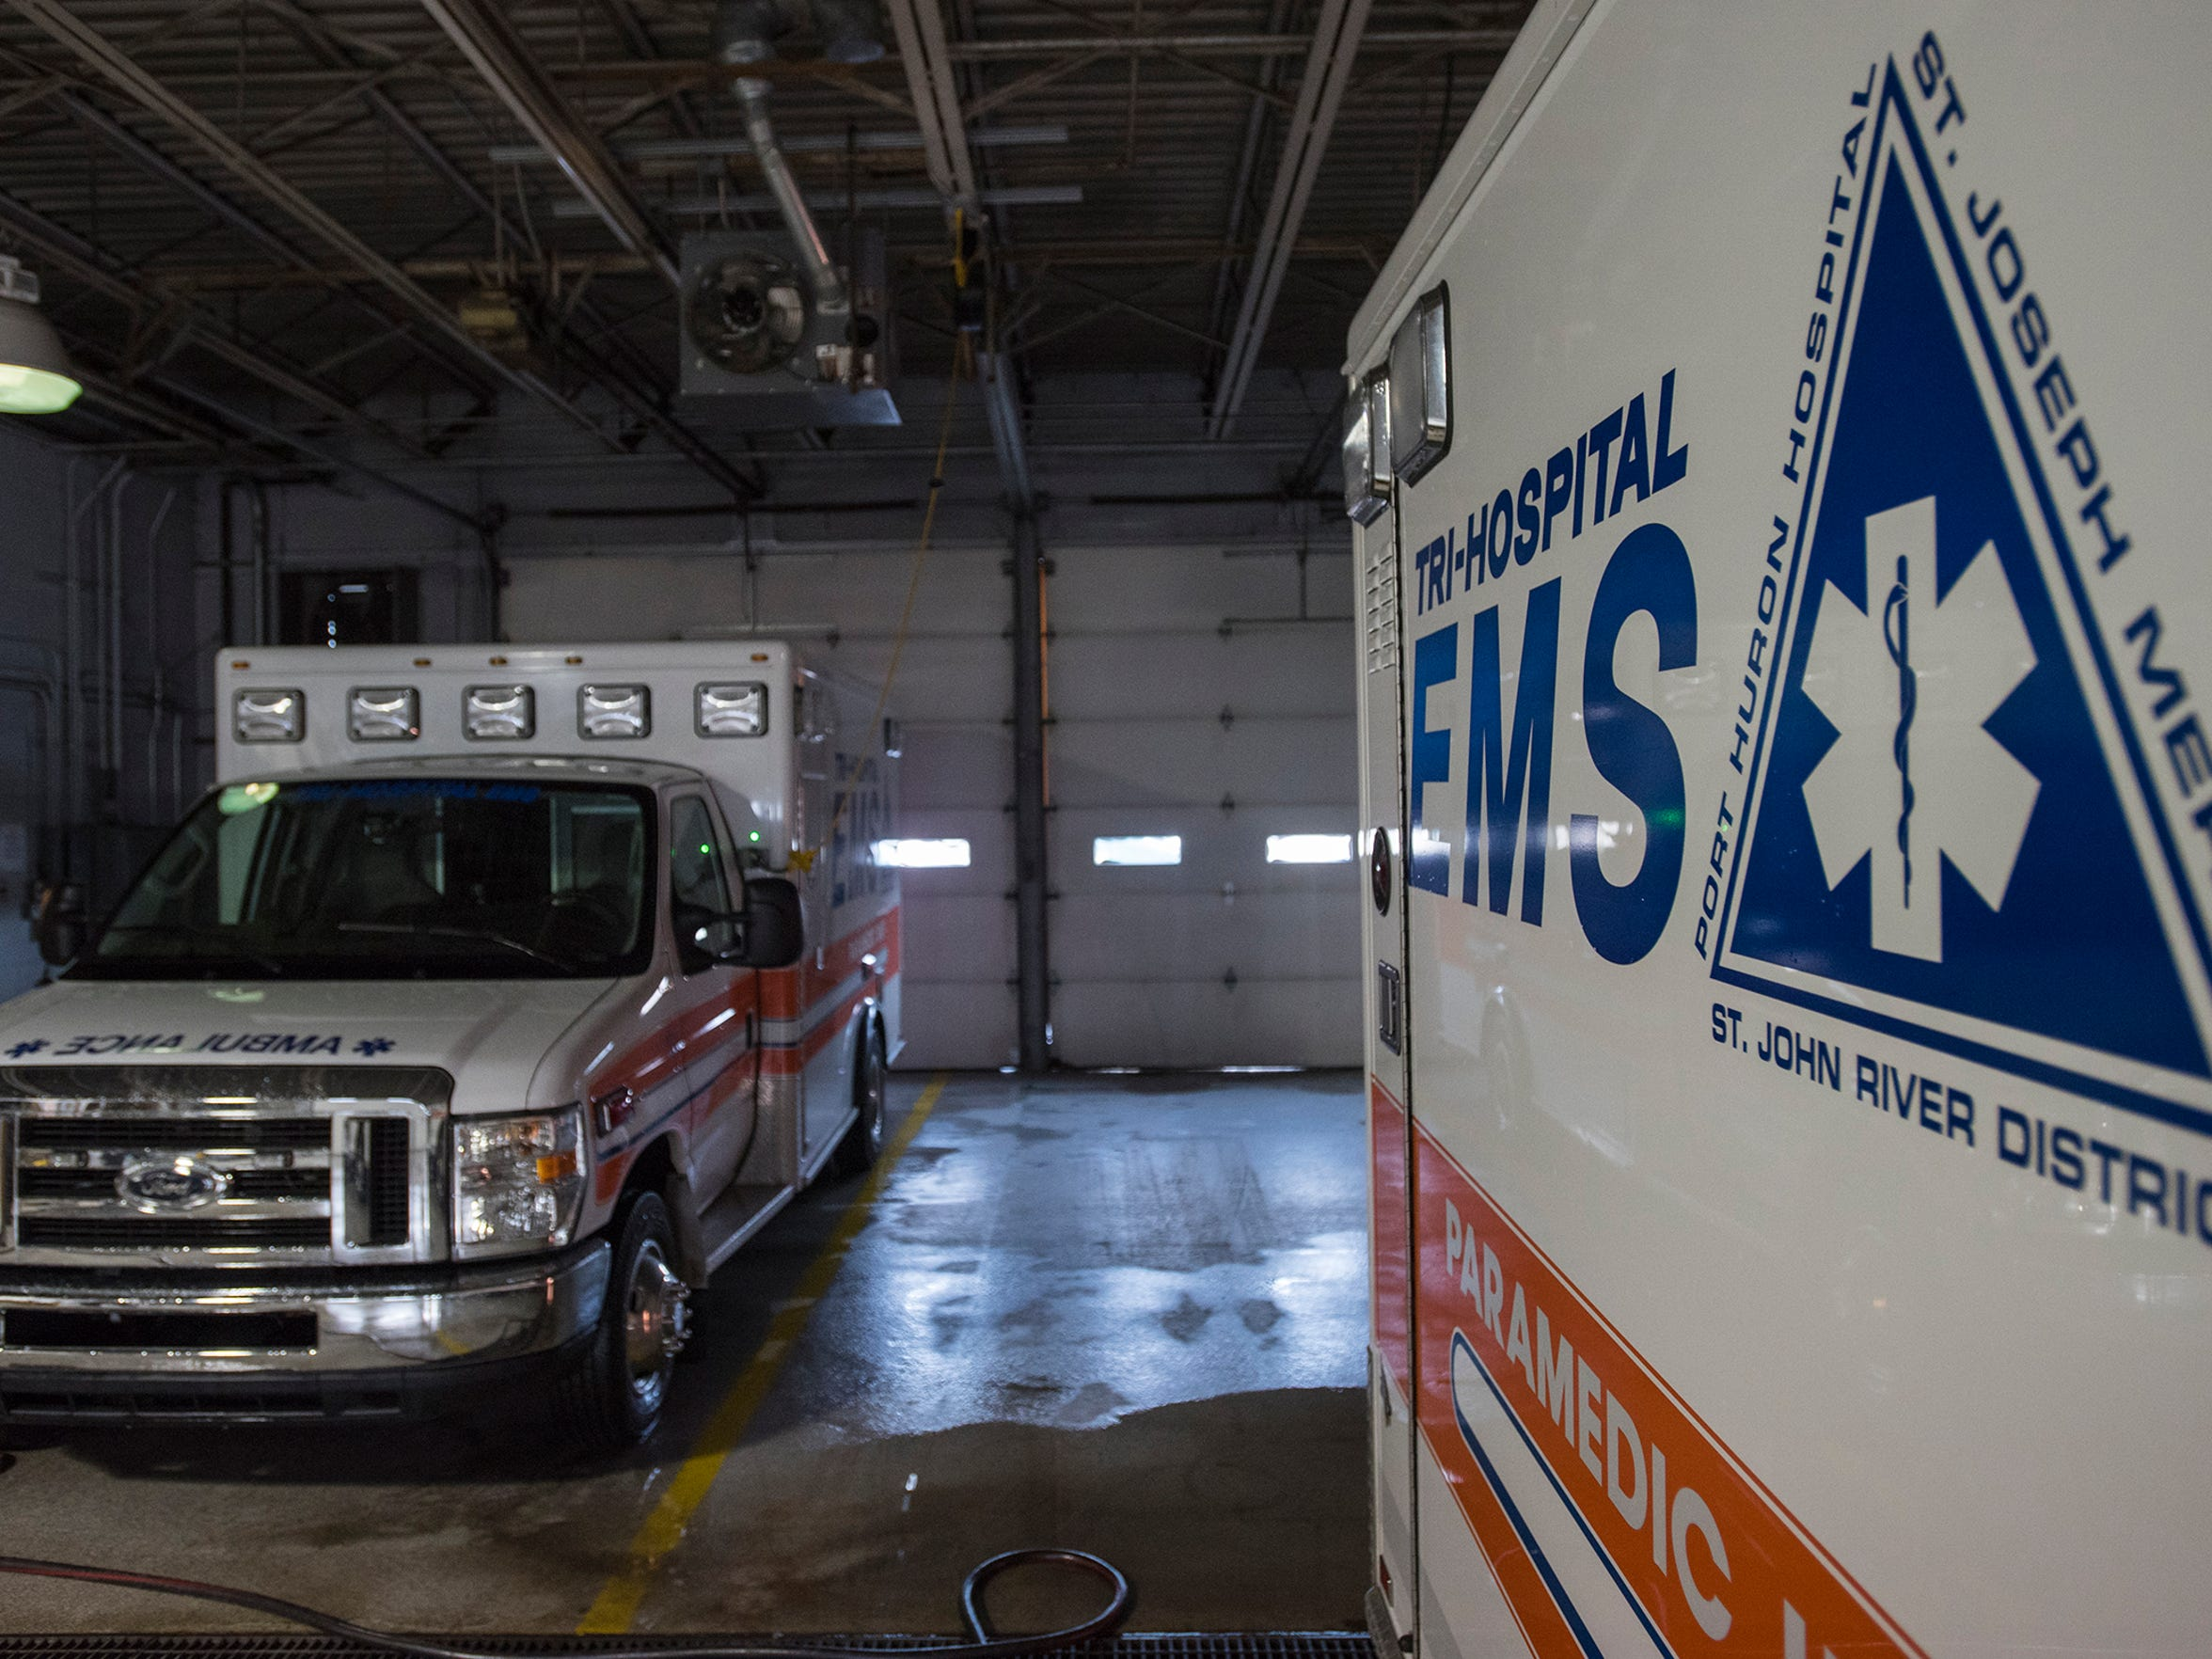 Two Tri-Hospital EMS ambulances are parked in the garage at central dispatch in Port Huron Jan. 18.